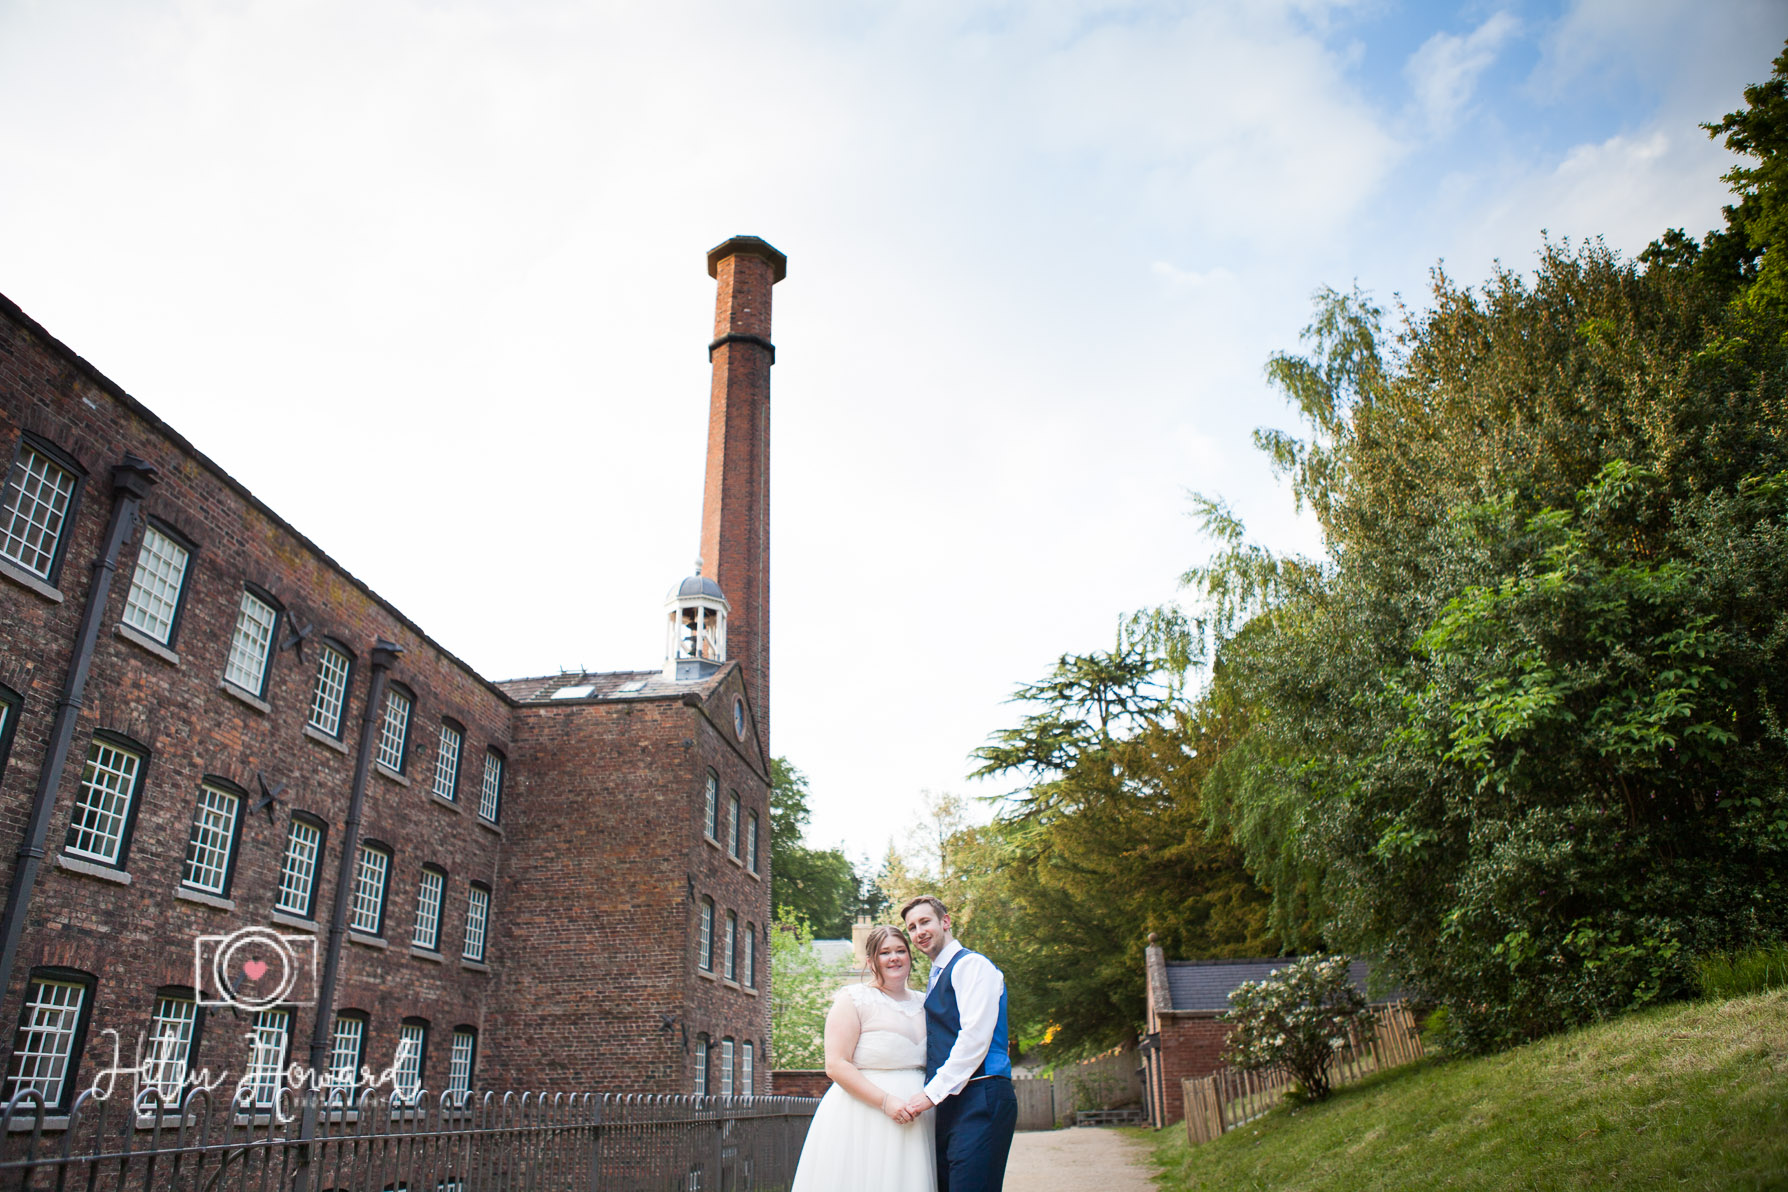 Bride and Groom at Quarry Bank Mill Weddings Styal-1.jpg